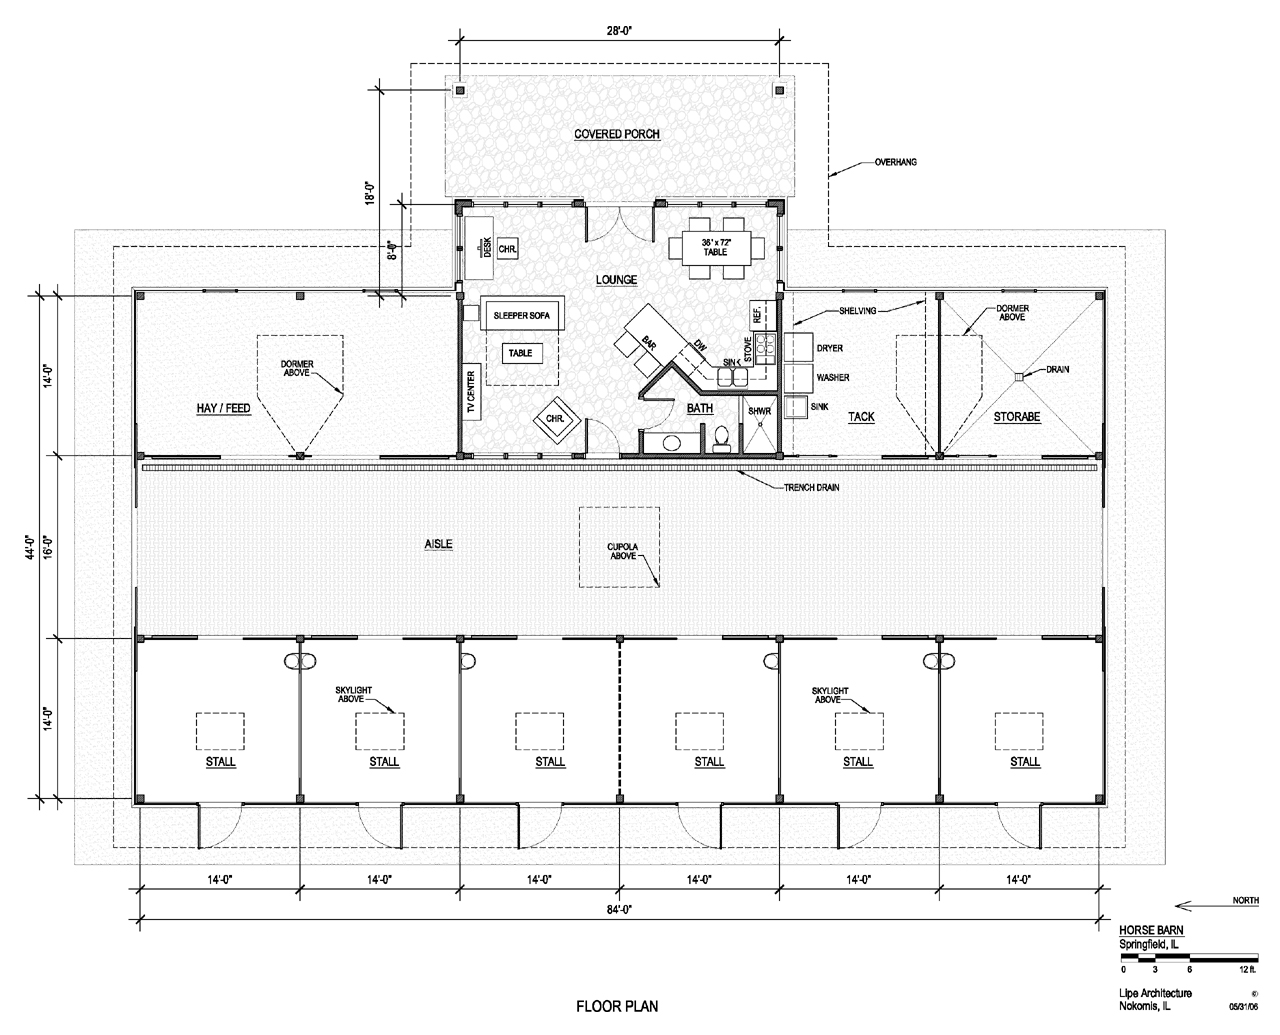 Small barn floor plans for Horse barn layouts floor plans